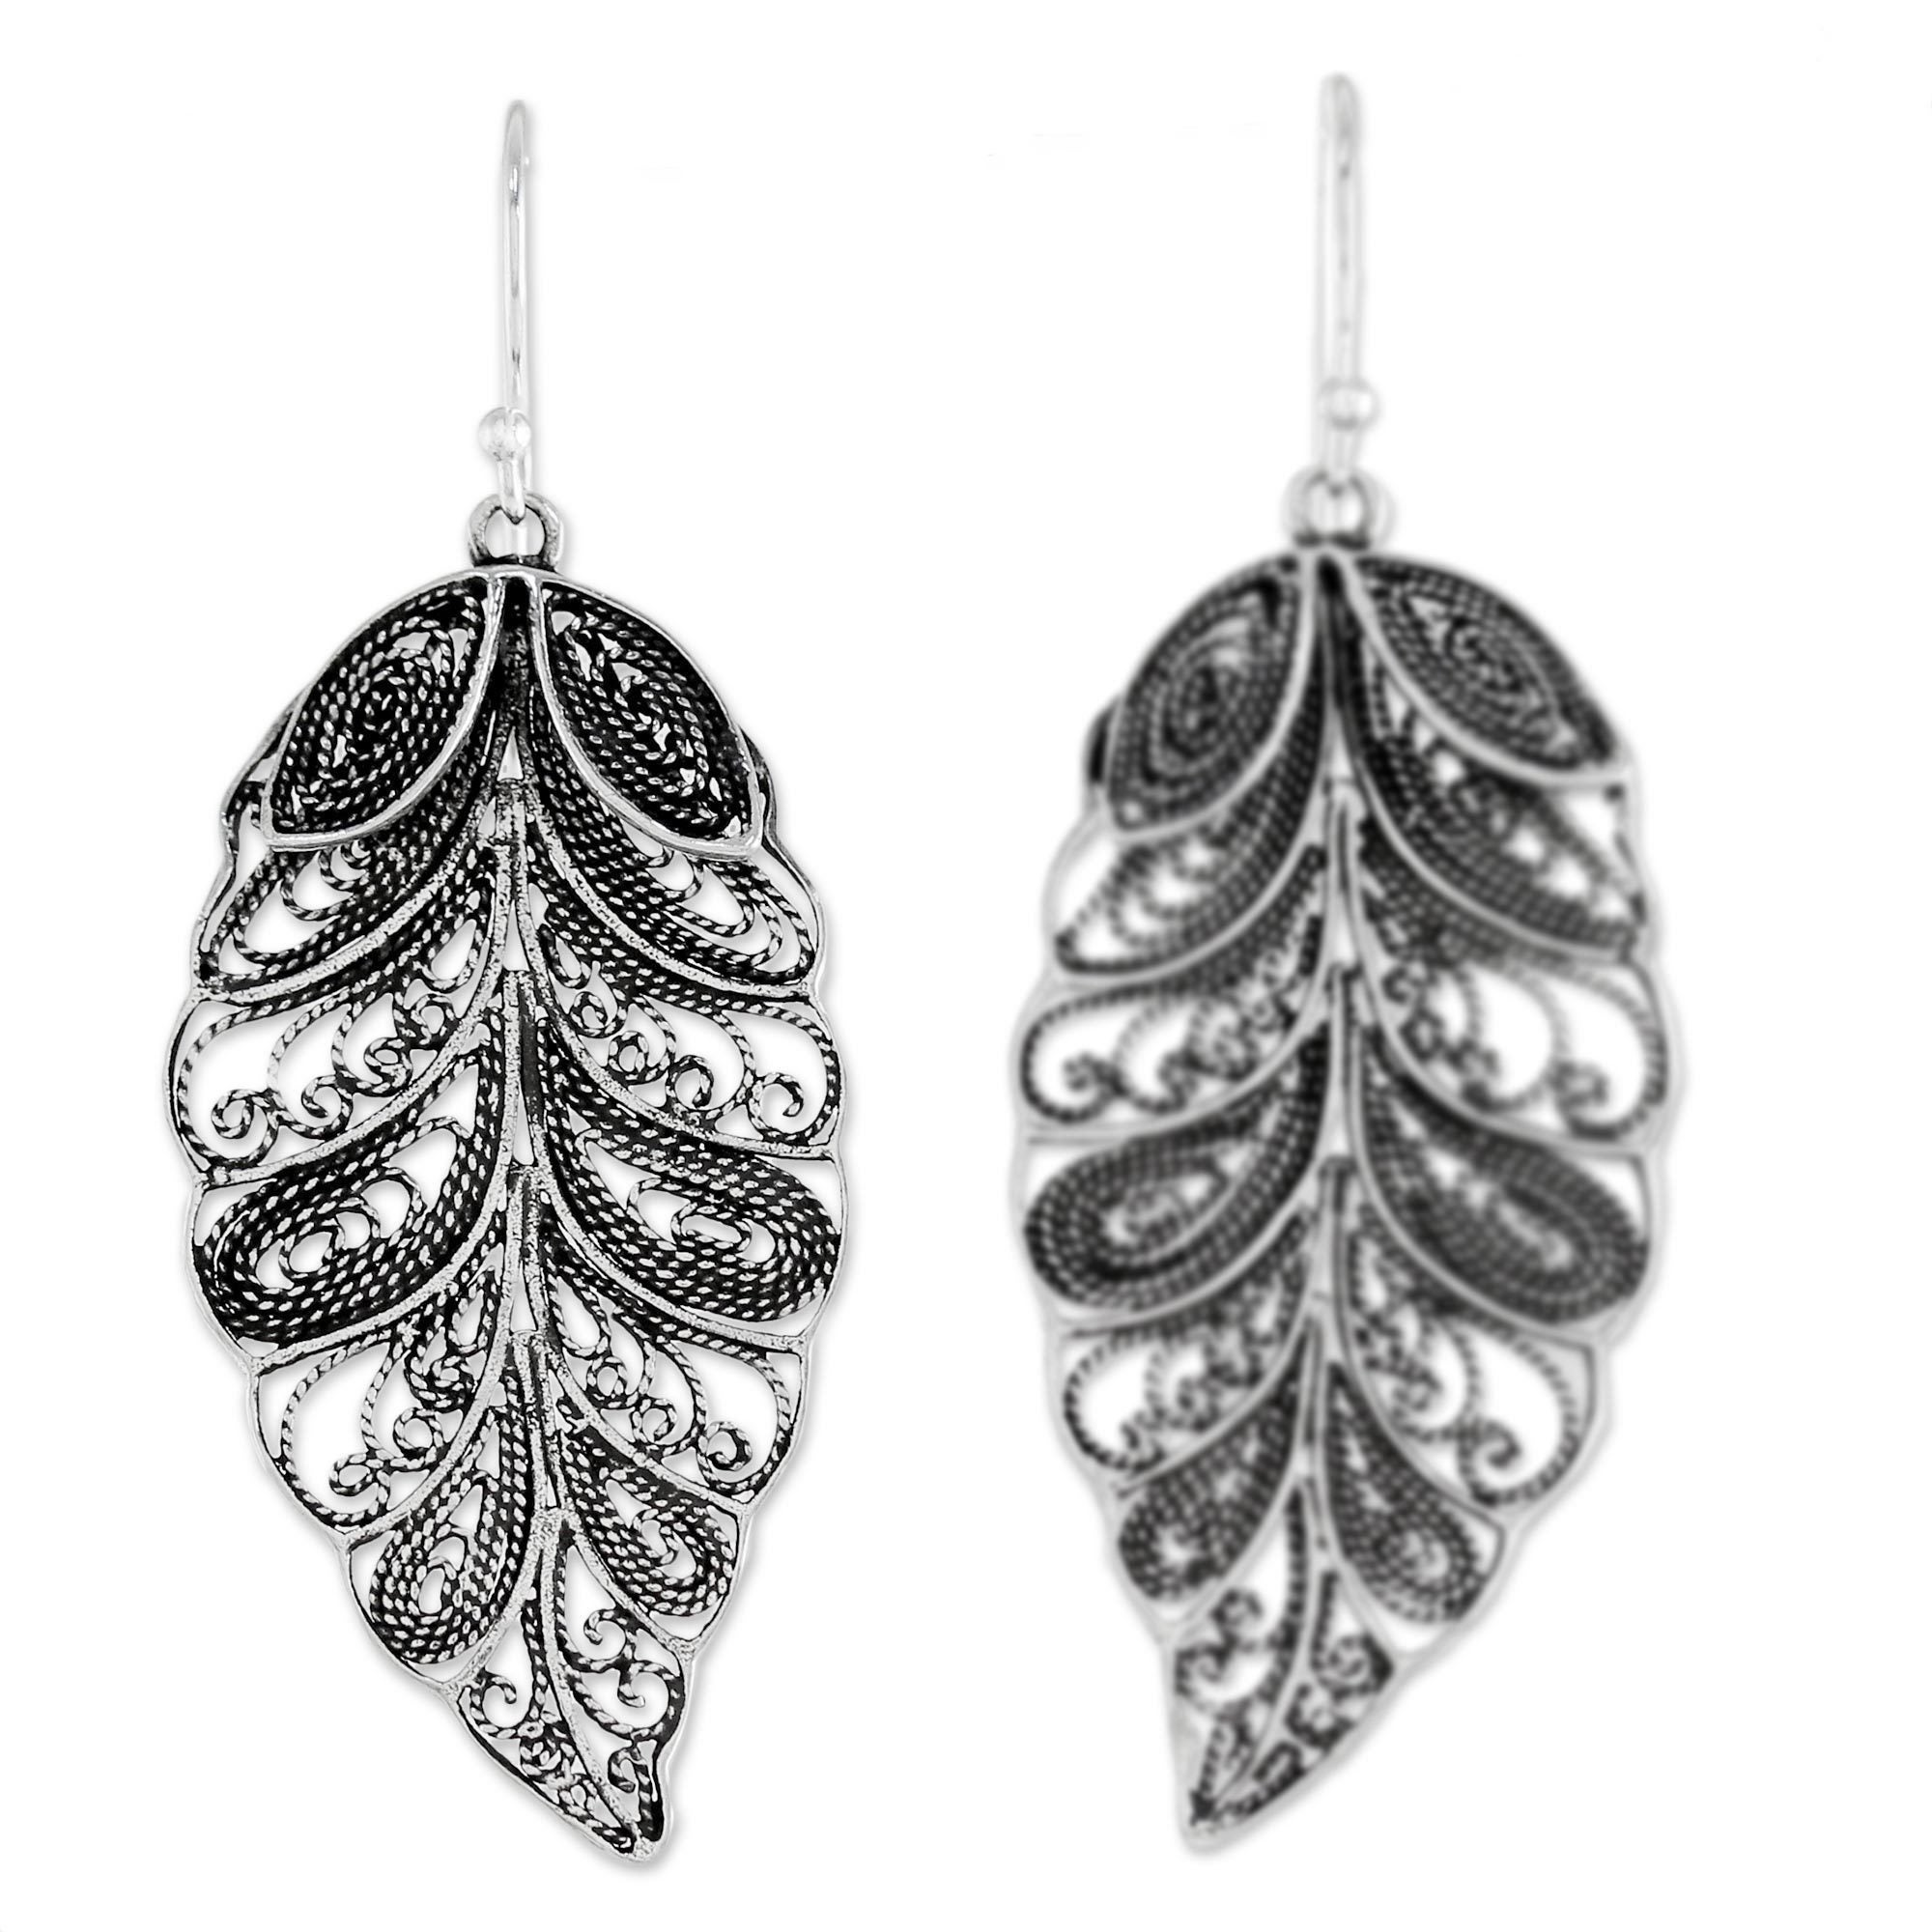 user of ratings calyx ehf out filigree on range henna earrings reviews based